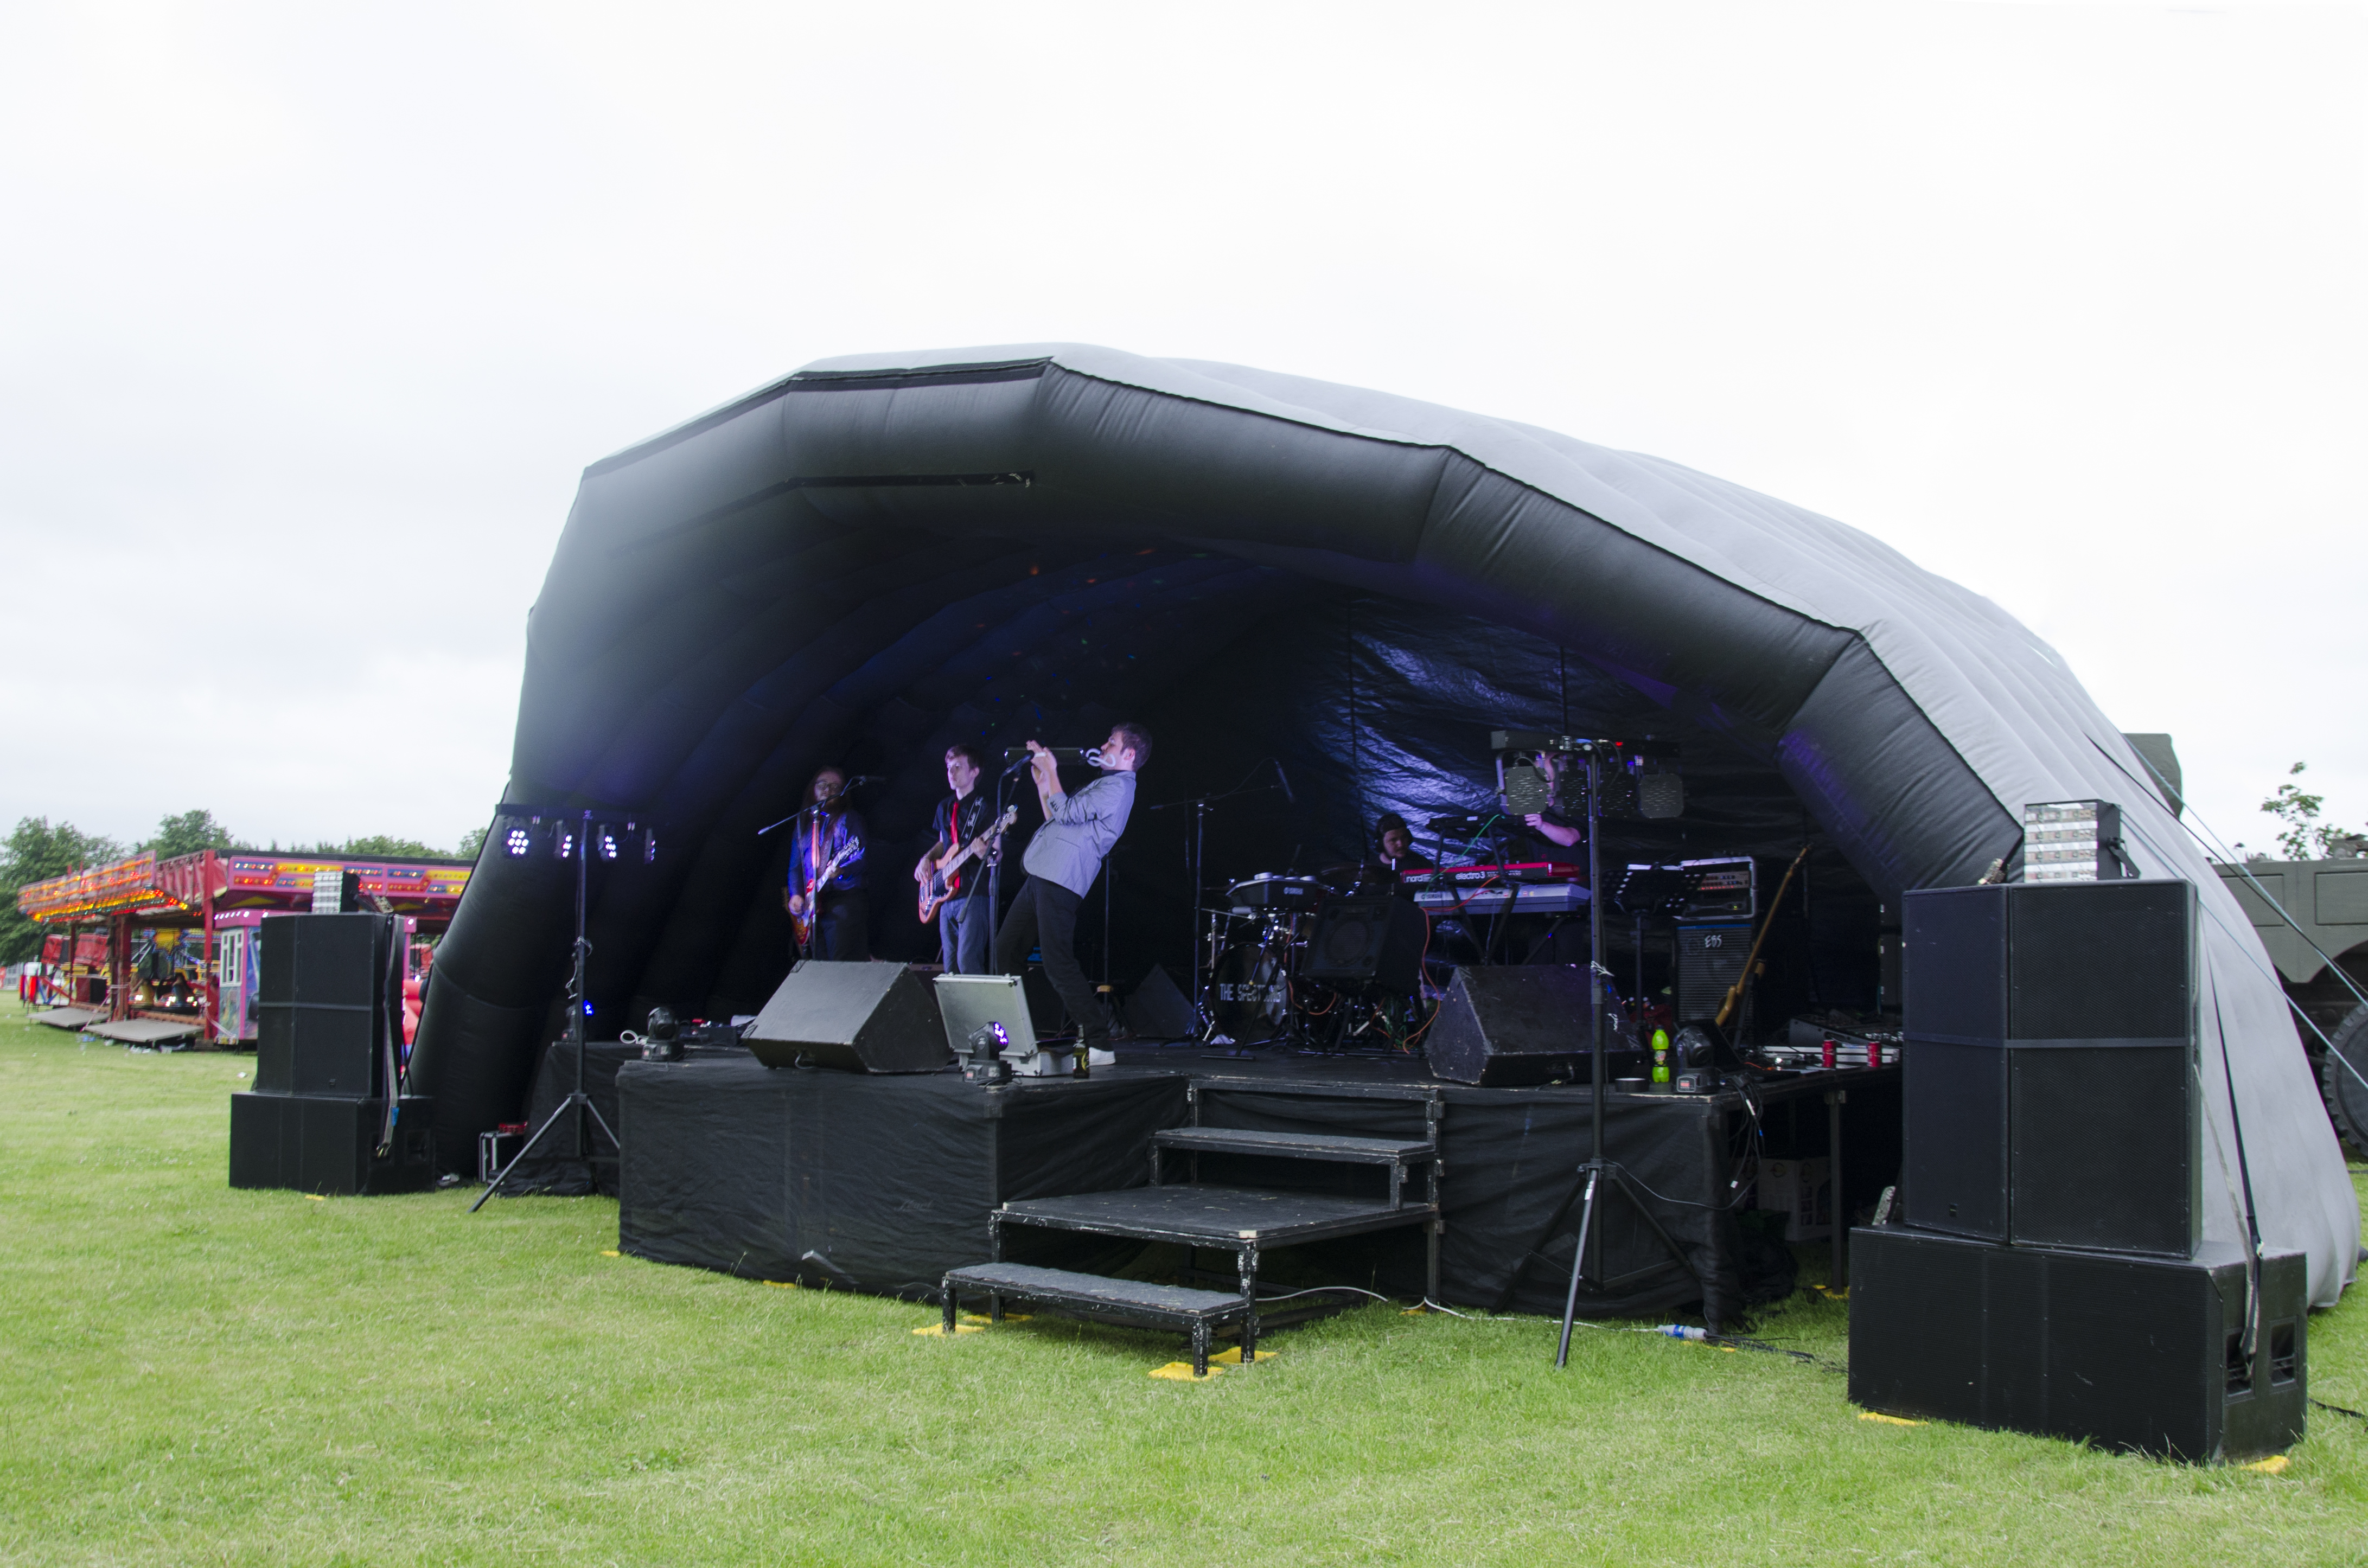 10m outdoorinflatable stage with sound